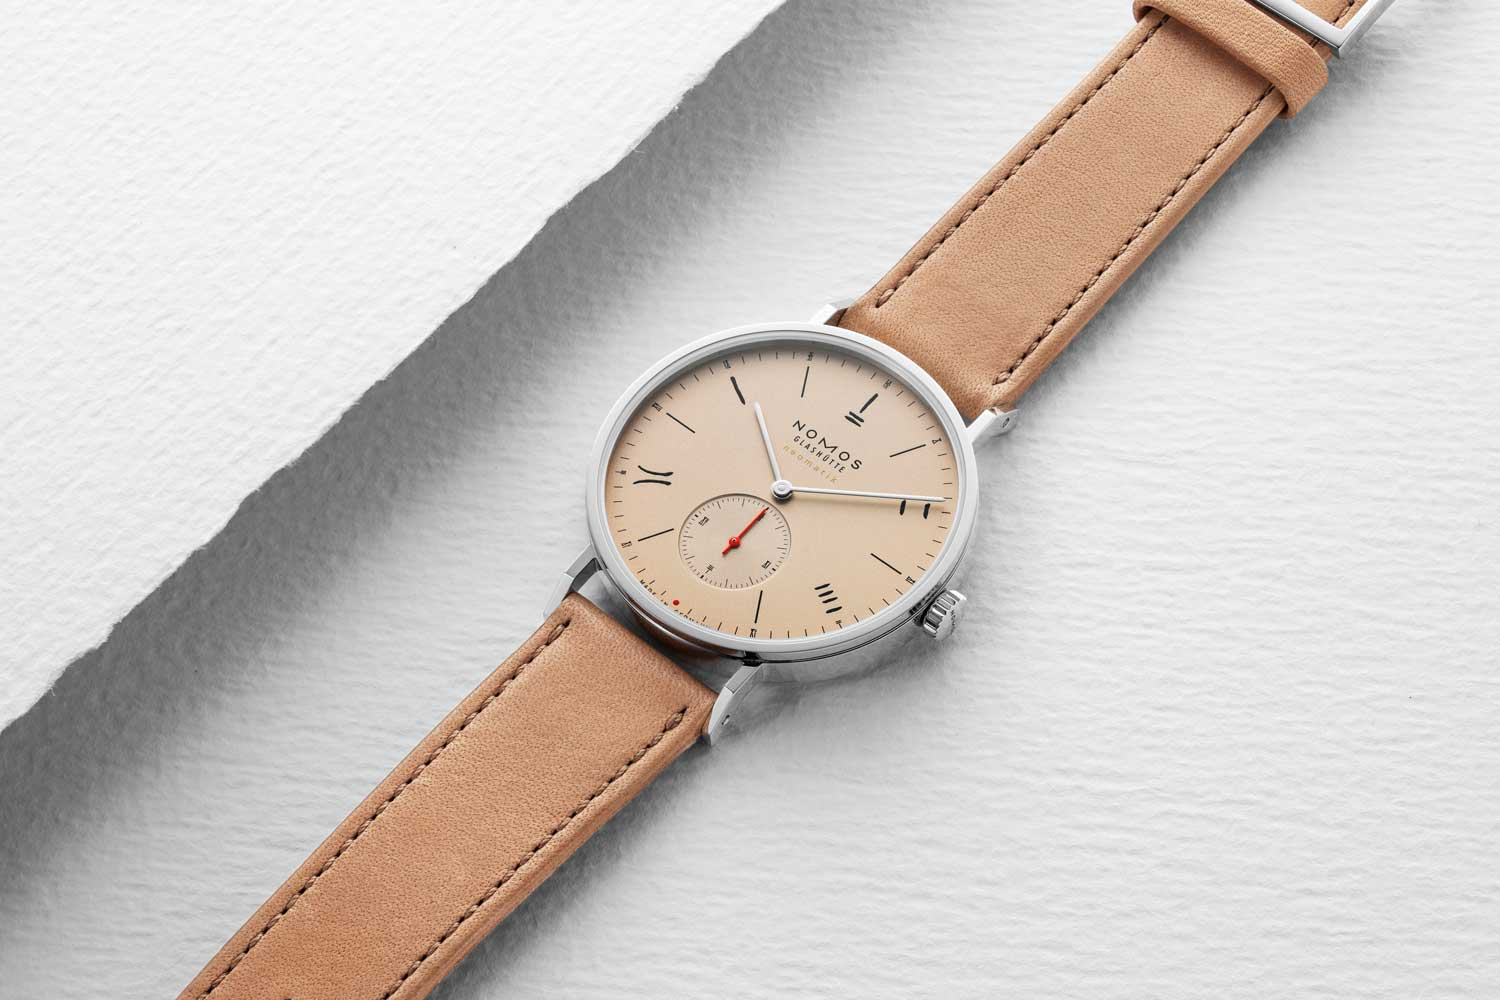 Nomos Red Dot (Salmon) 2019 for The Hour Glass' 40th Anniversary (Image © Revolution)